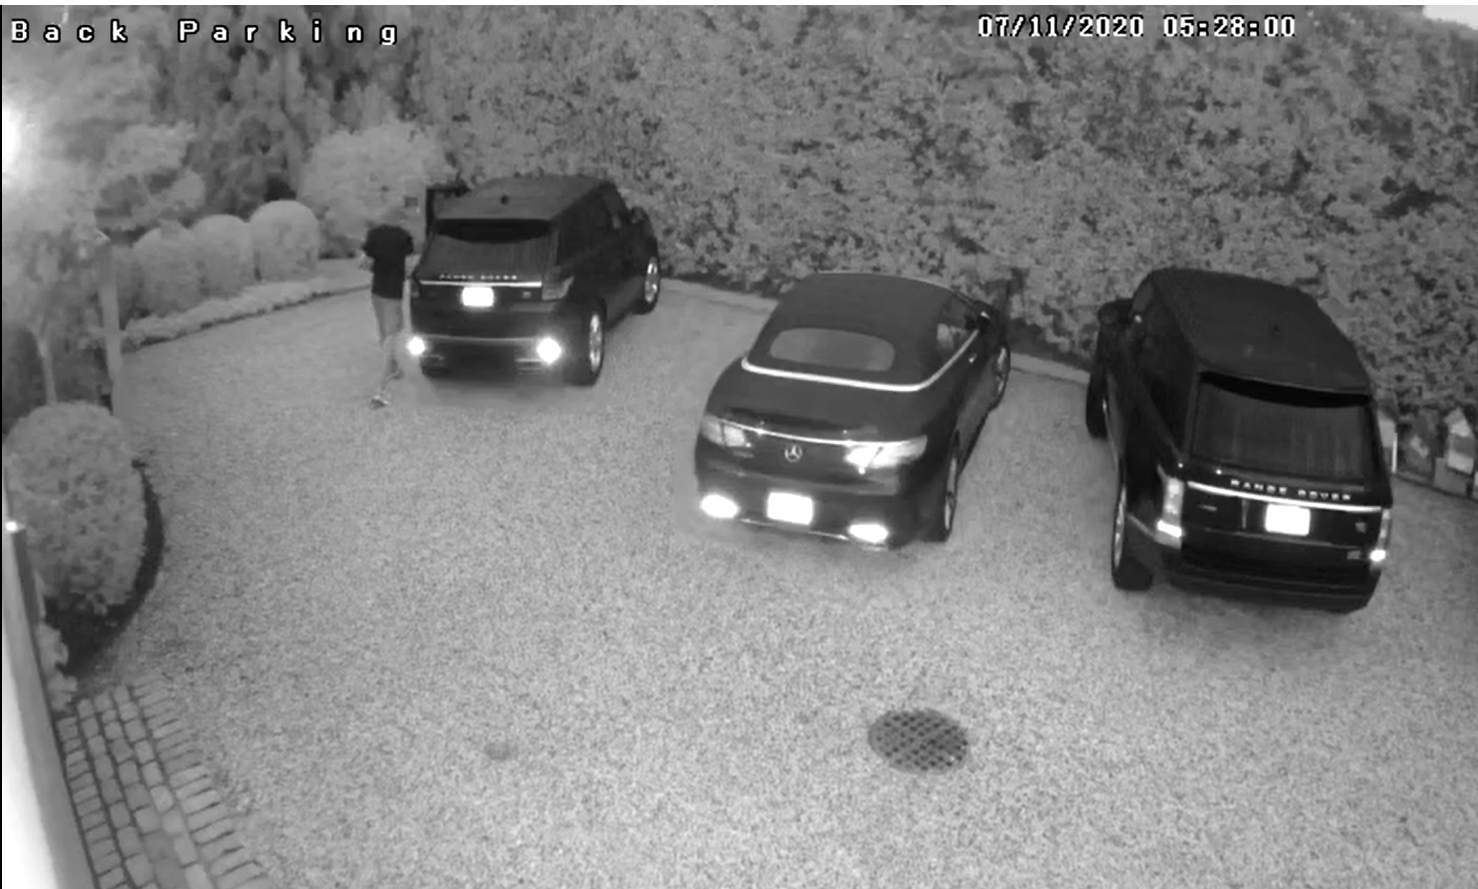 Easy access, with vehicles left unlocked  and key fobs left inside leave luxury cars ripe for the stealing, as seen in security video of a recent theft. COURTESY SOUTHAMPTON TOWN POLICE